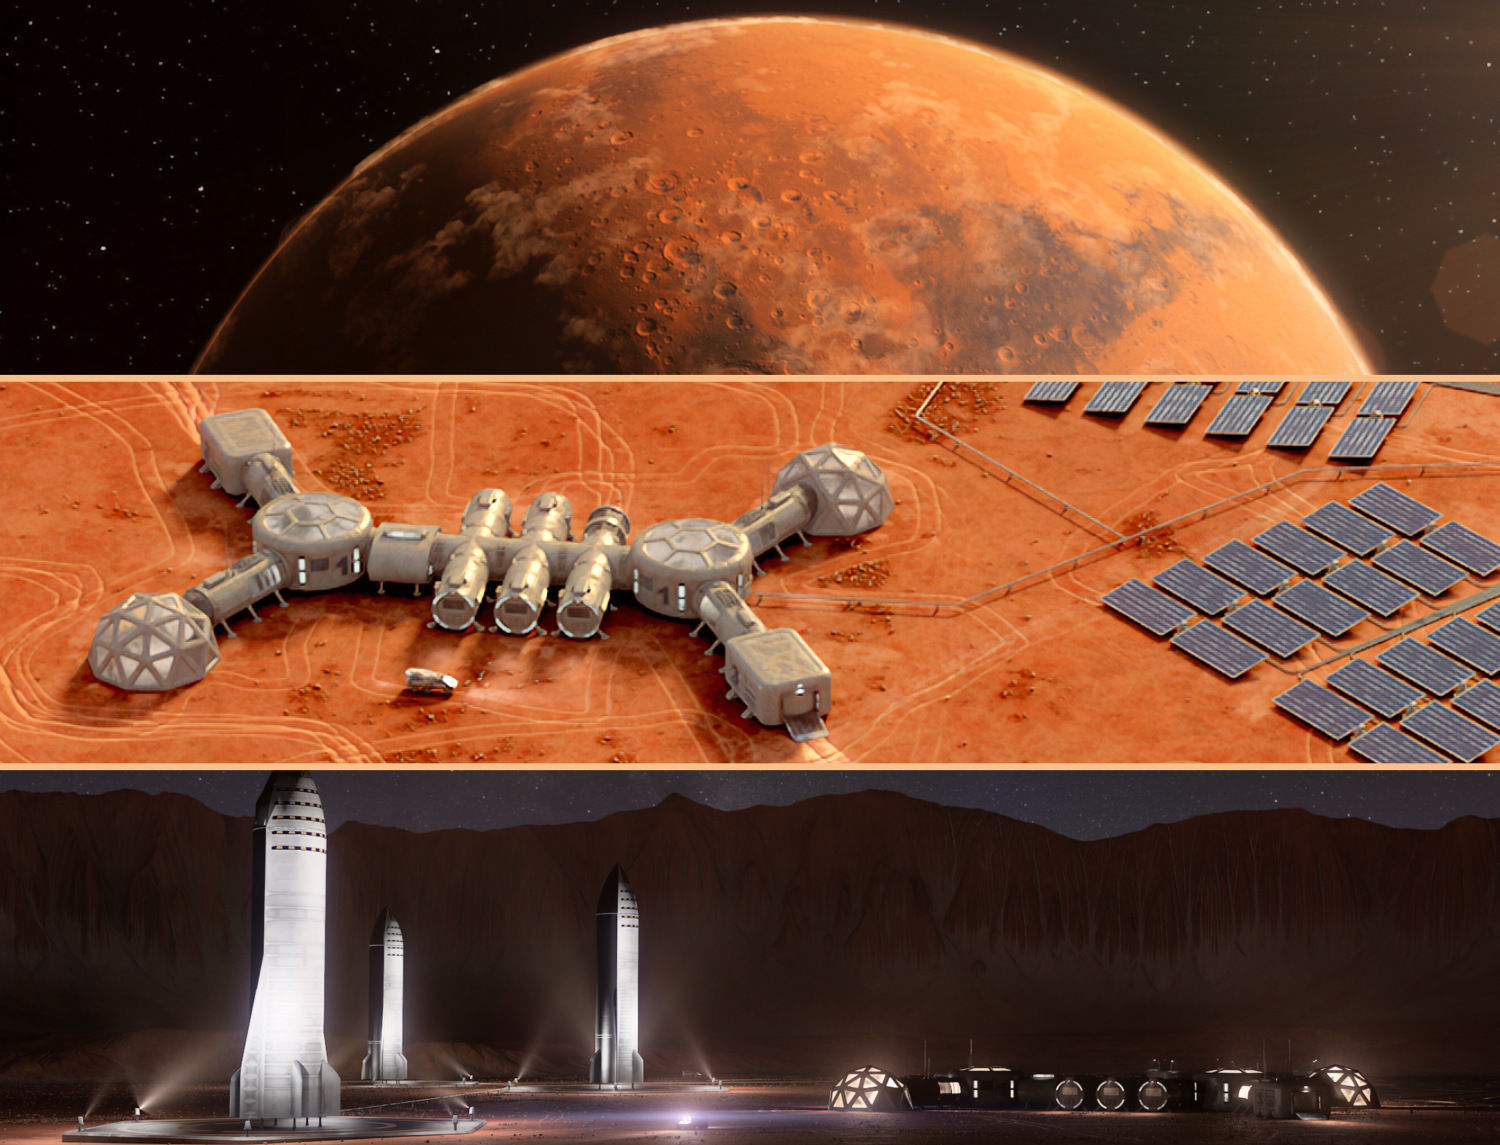 Martian base colony in the crater and entire planet Mars